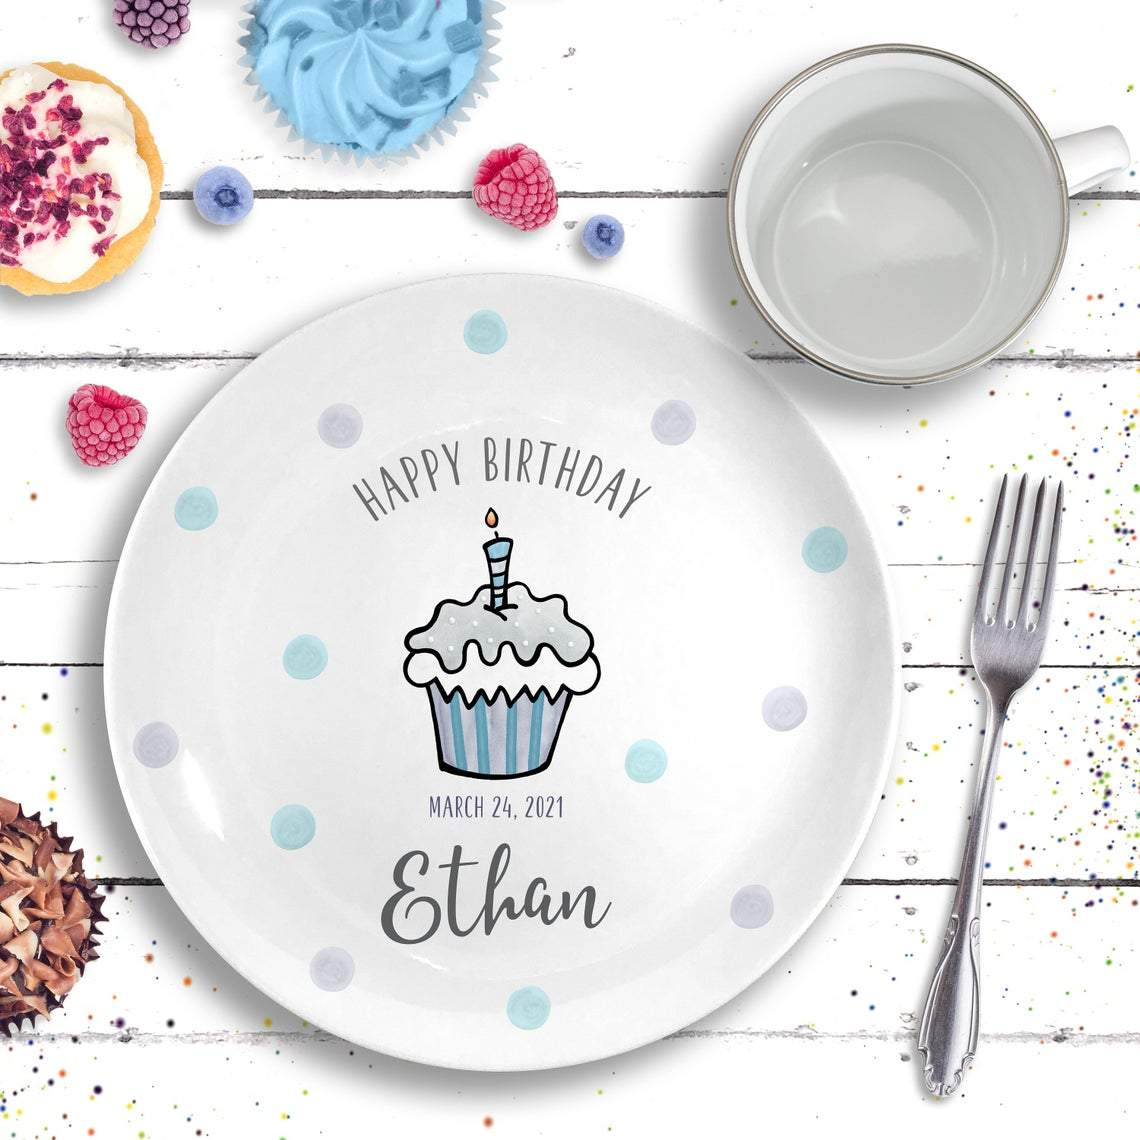 Personalized Ceramic - Birthday Party Decor For Baby Girl / Boy-Gifts-Plate + Mug-Grey-Boy-Jack and Jill Boutique